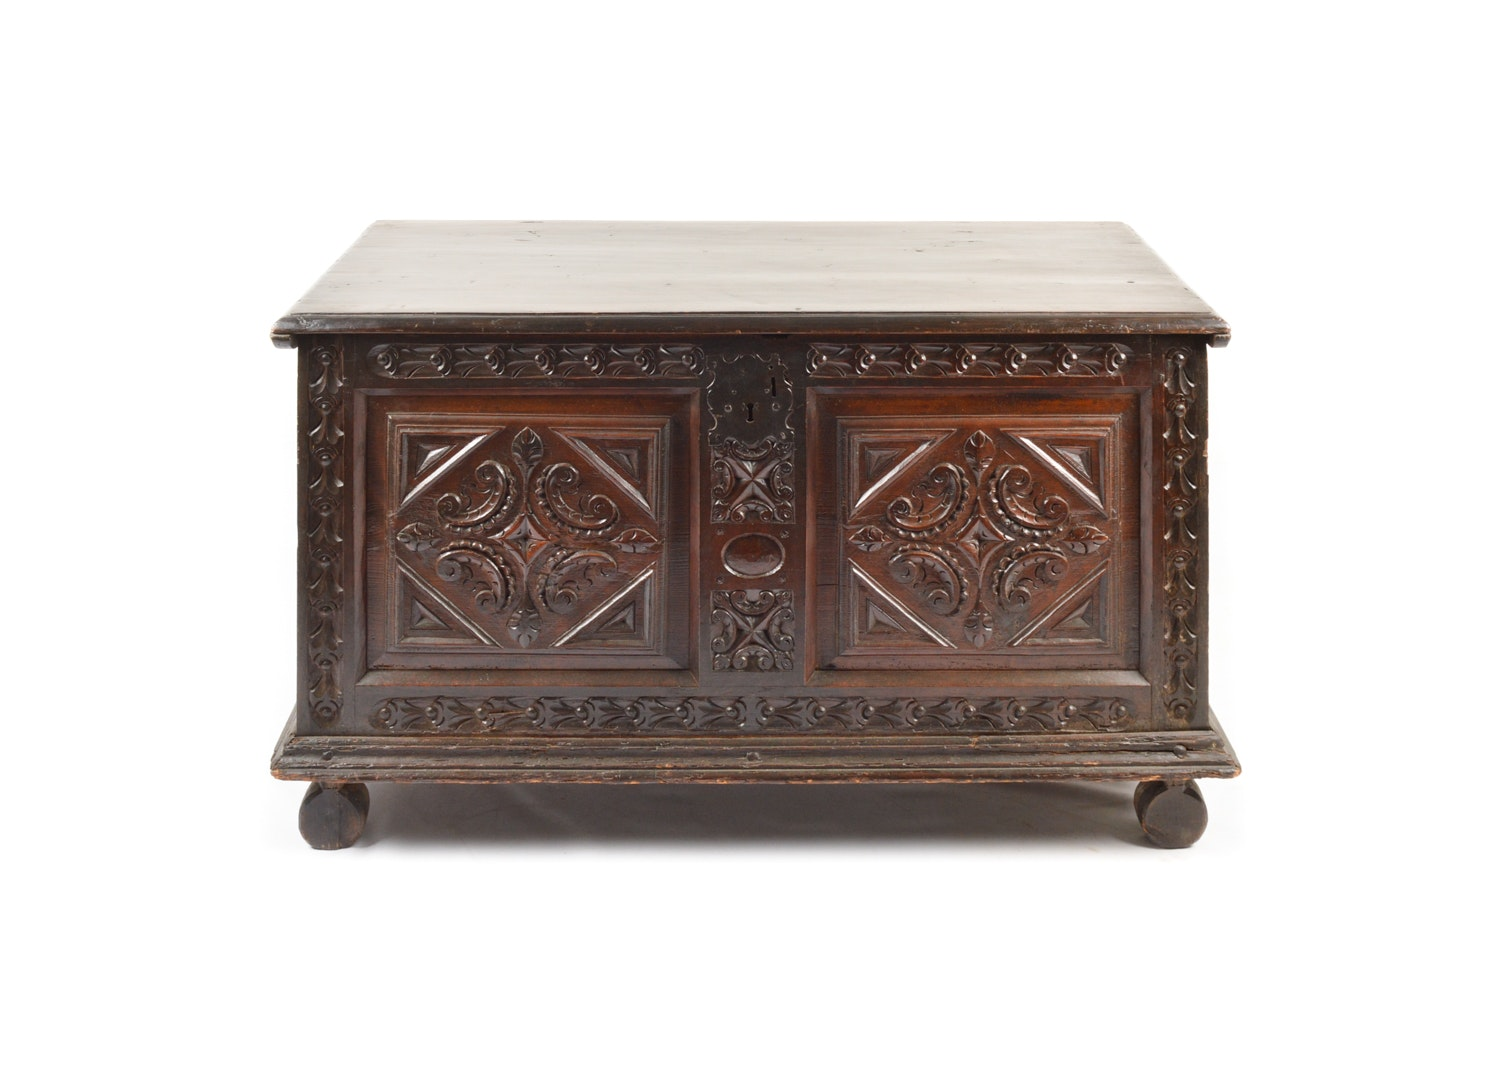 18th Century English Carved Oak Two Panel Chest